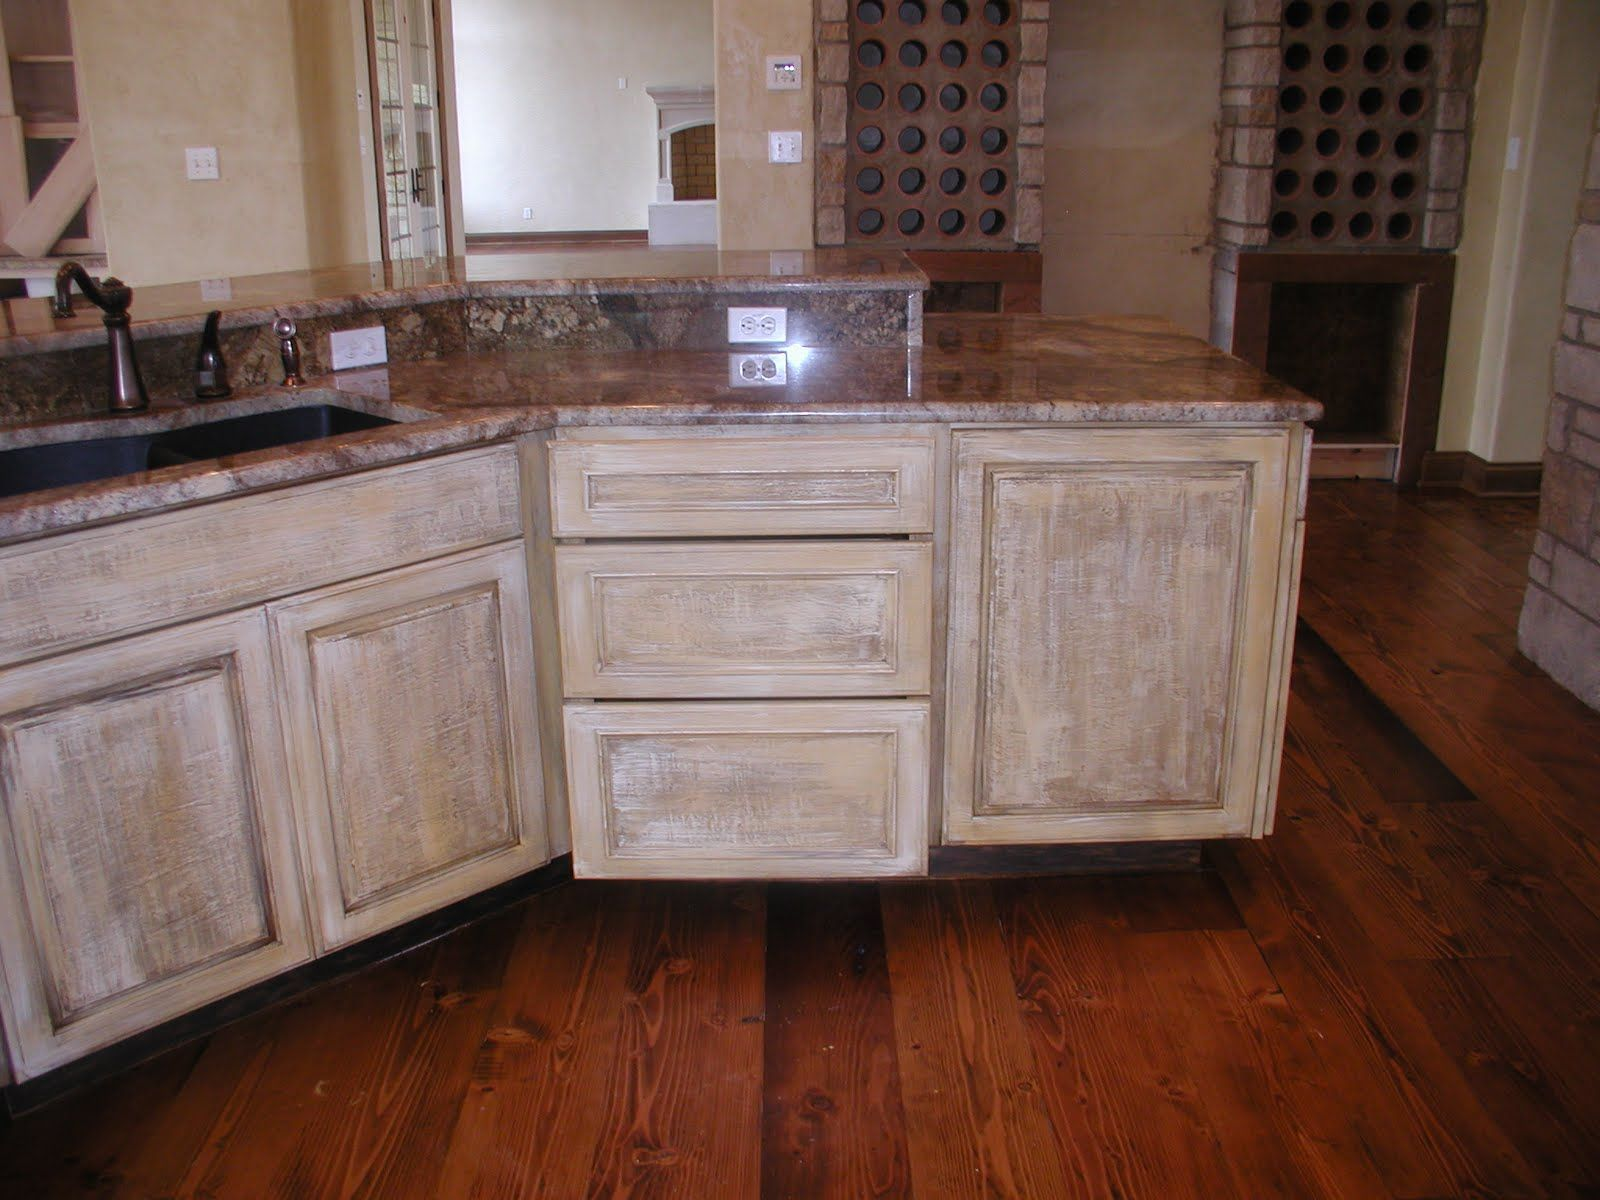 Distressed White Kitchen Cabinets Kitchen Cabinets White Distressed Painting Kitchen Cab Distressed Kitchen Cabinets White Kitchen Rustic Distressed Kitchen